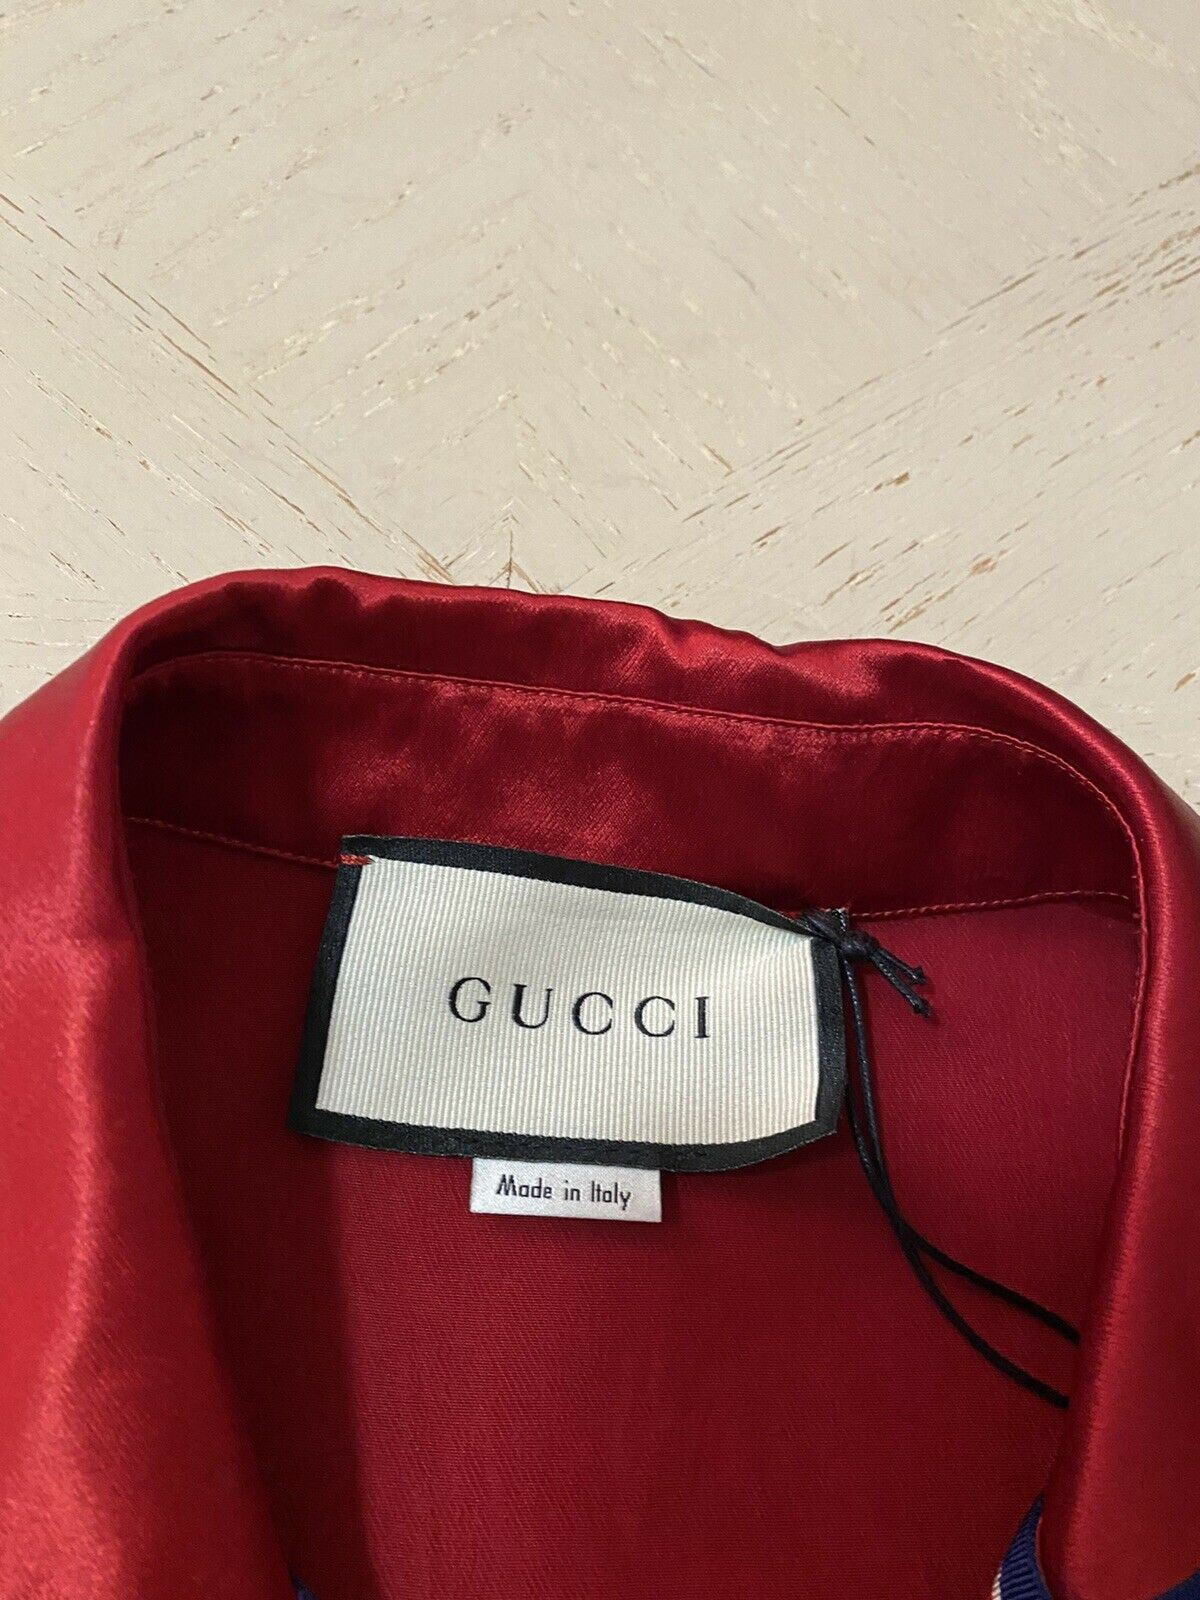 New $1880 Gucci Men's Short Sleeve Shirt Black/Red Size S Italy